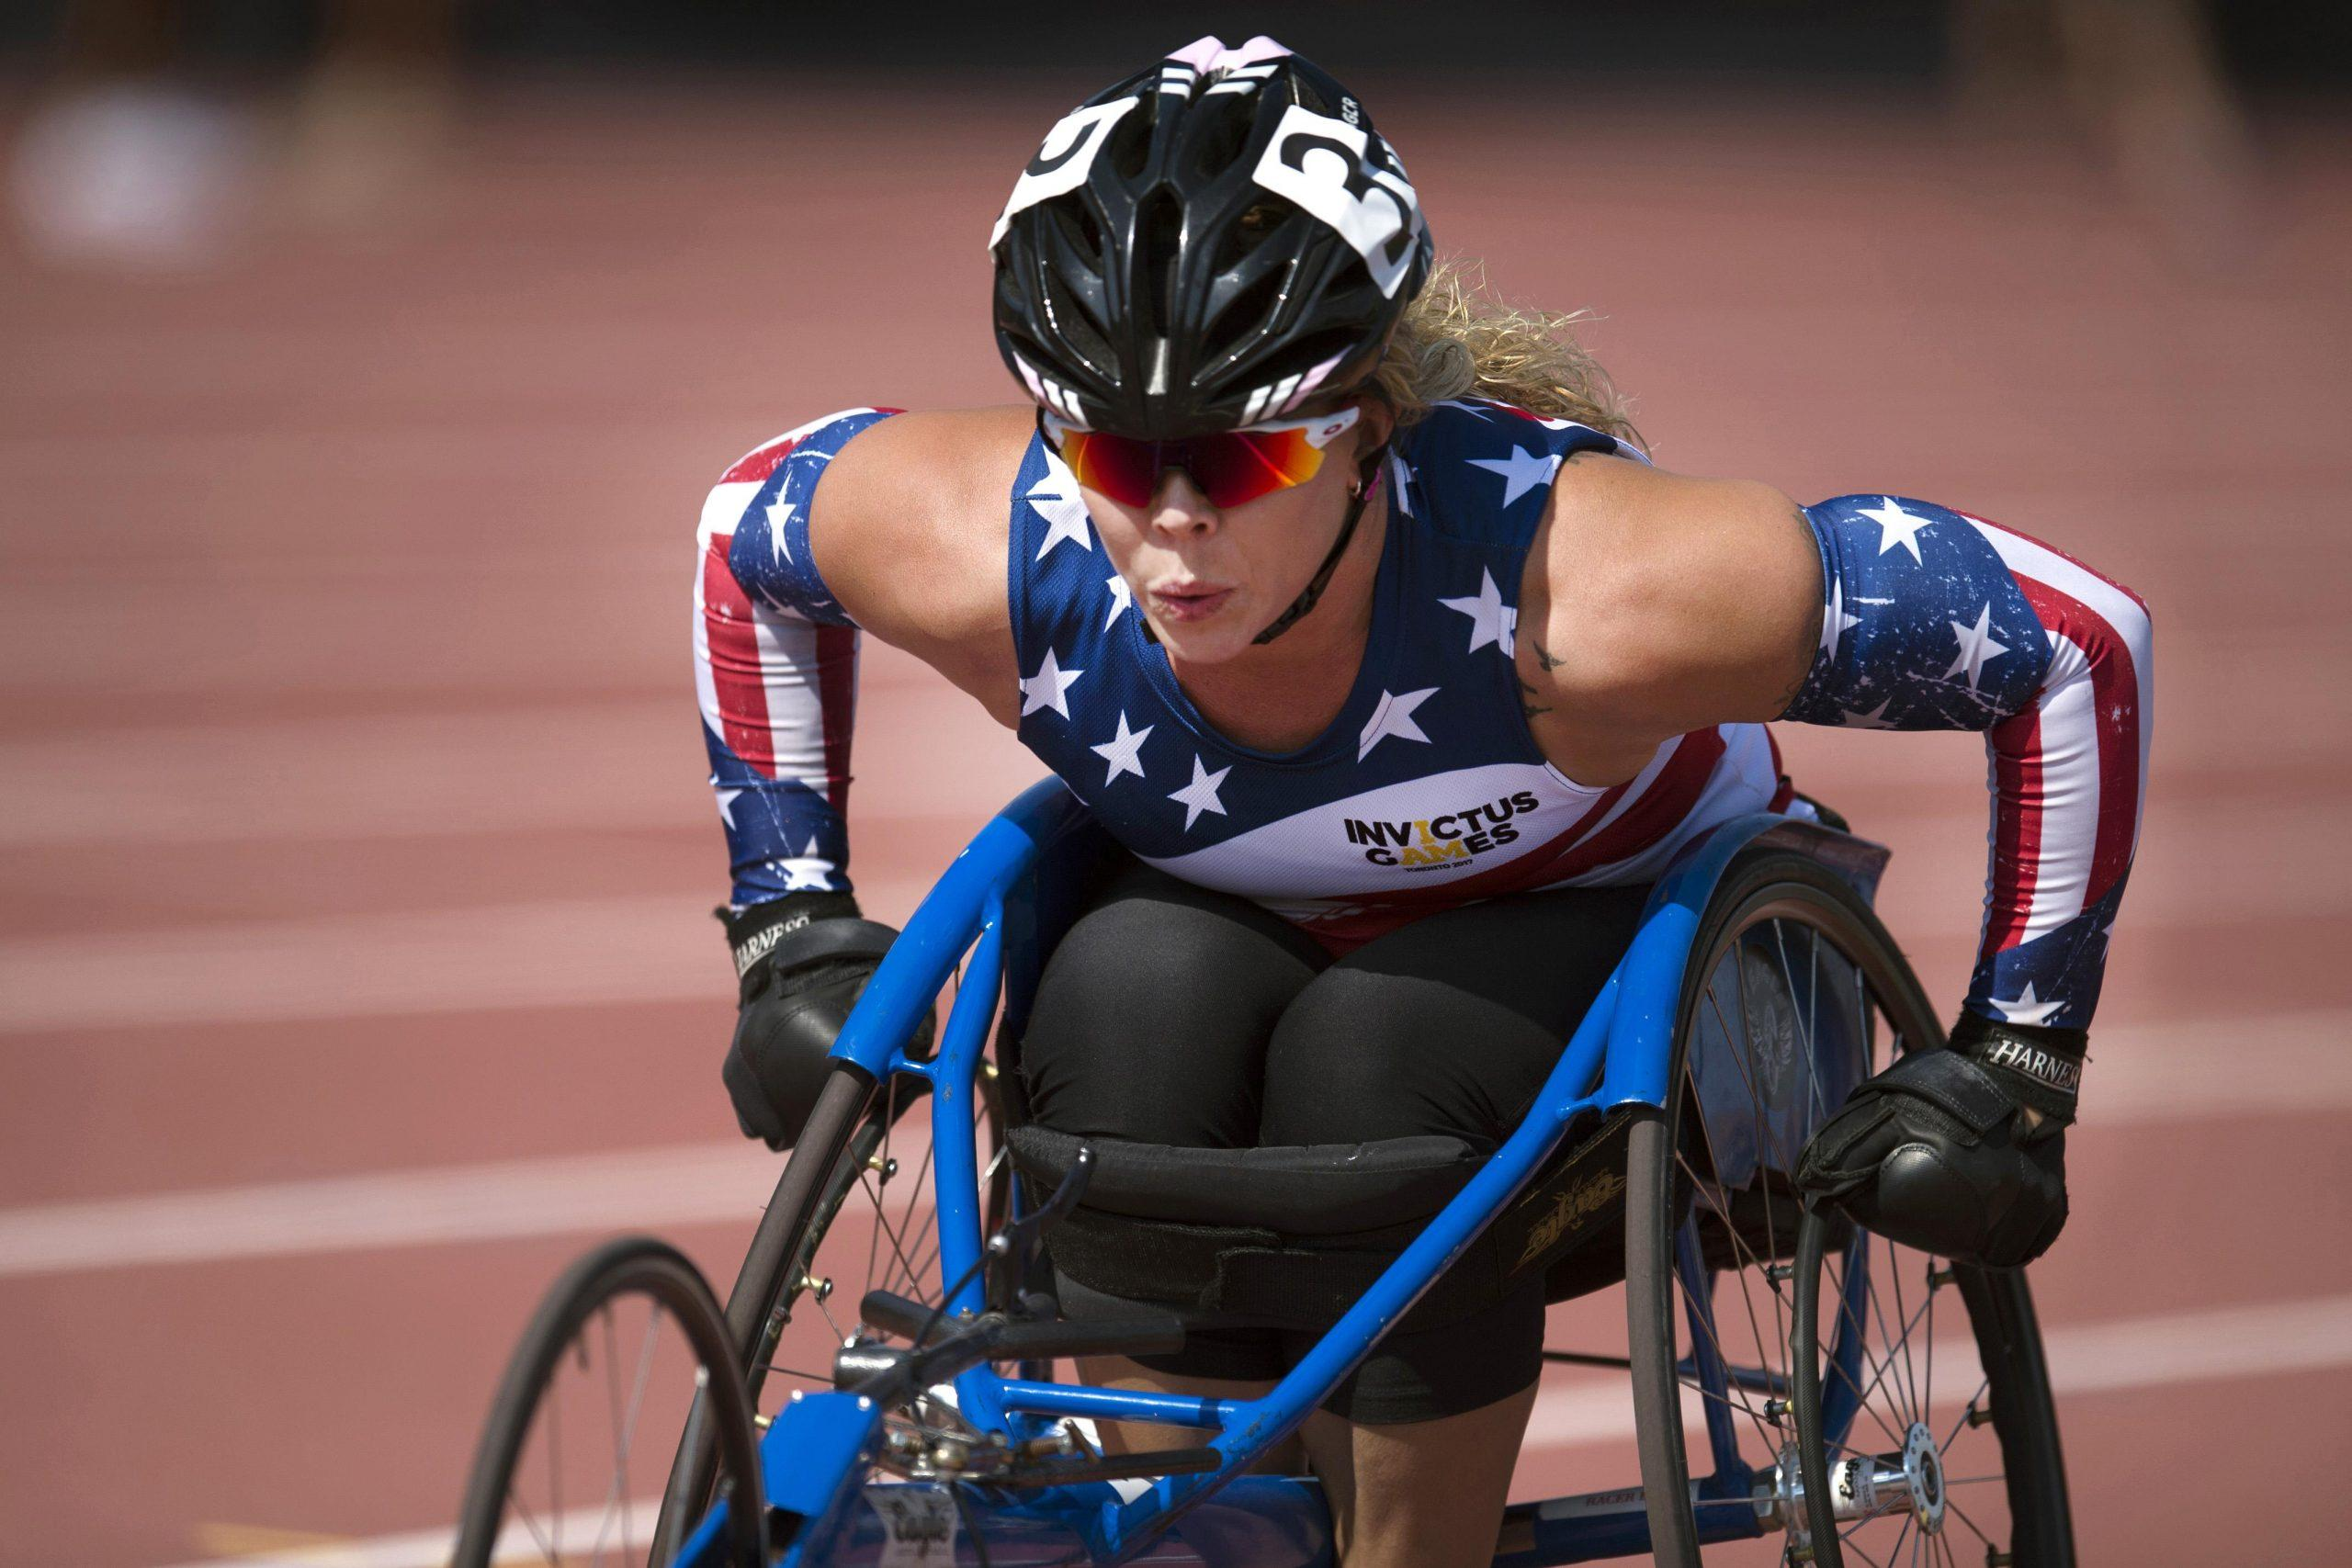 An athlete competes in a wheelchair race at the 2017 Invictus Games.